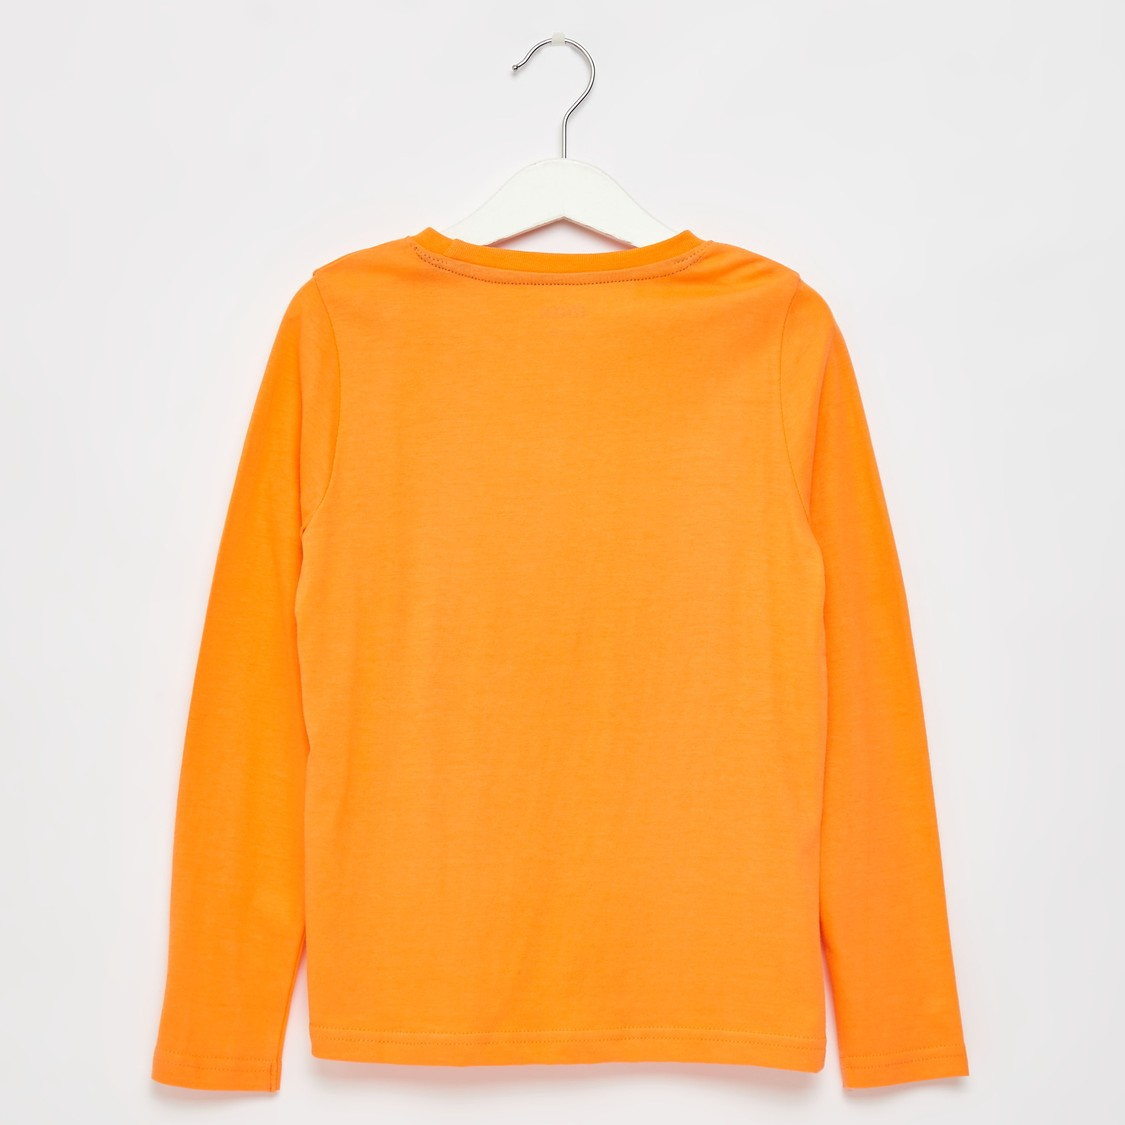 Printed Round Neck T-shirt with Long Sleeves